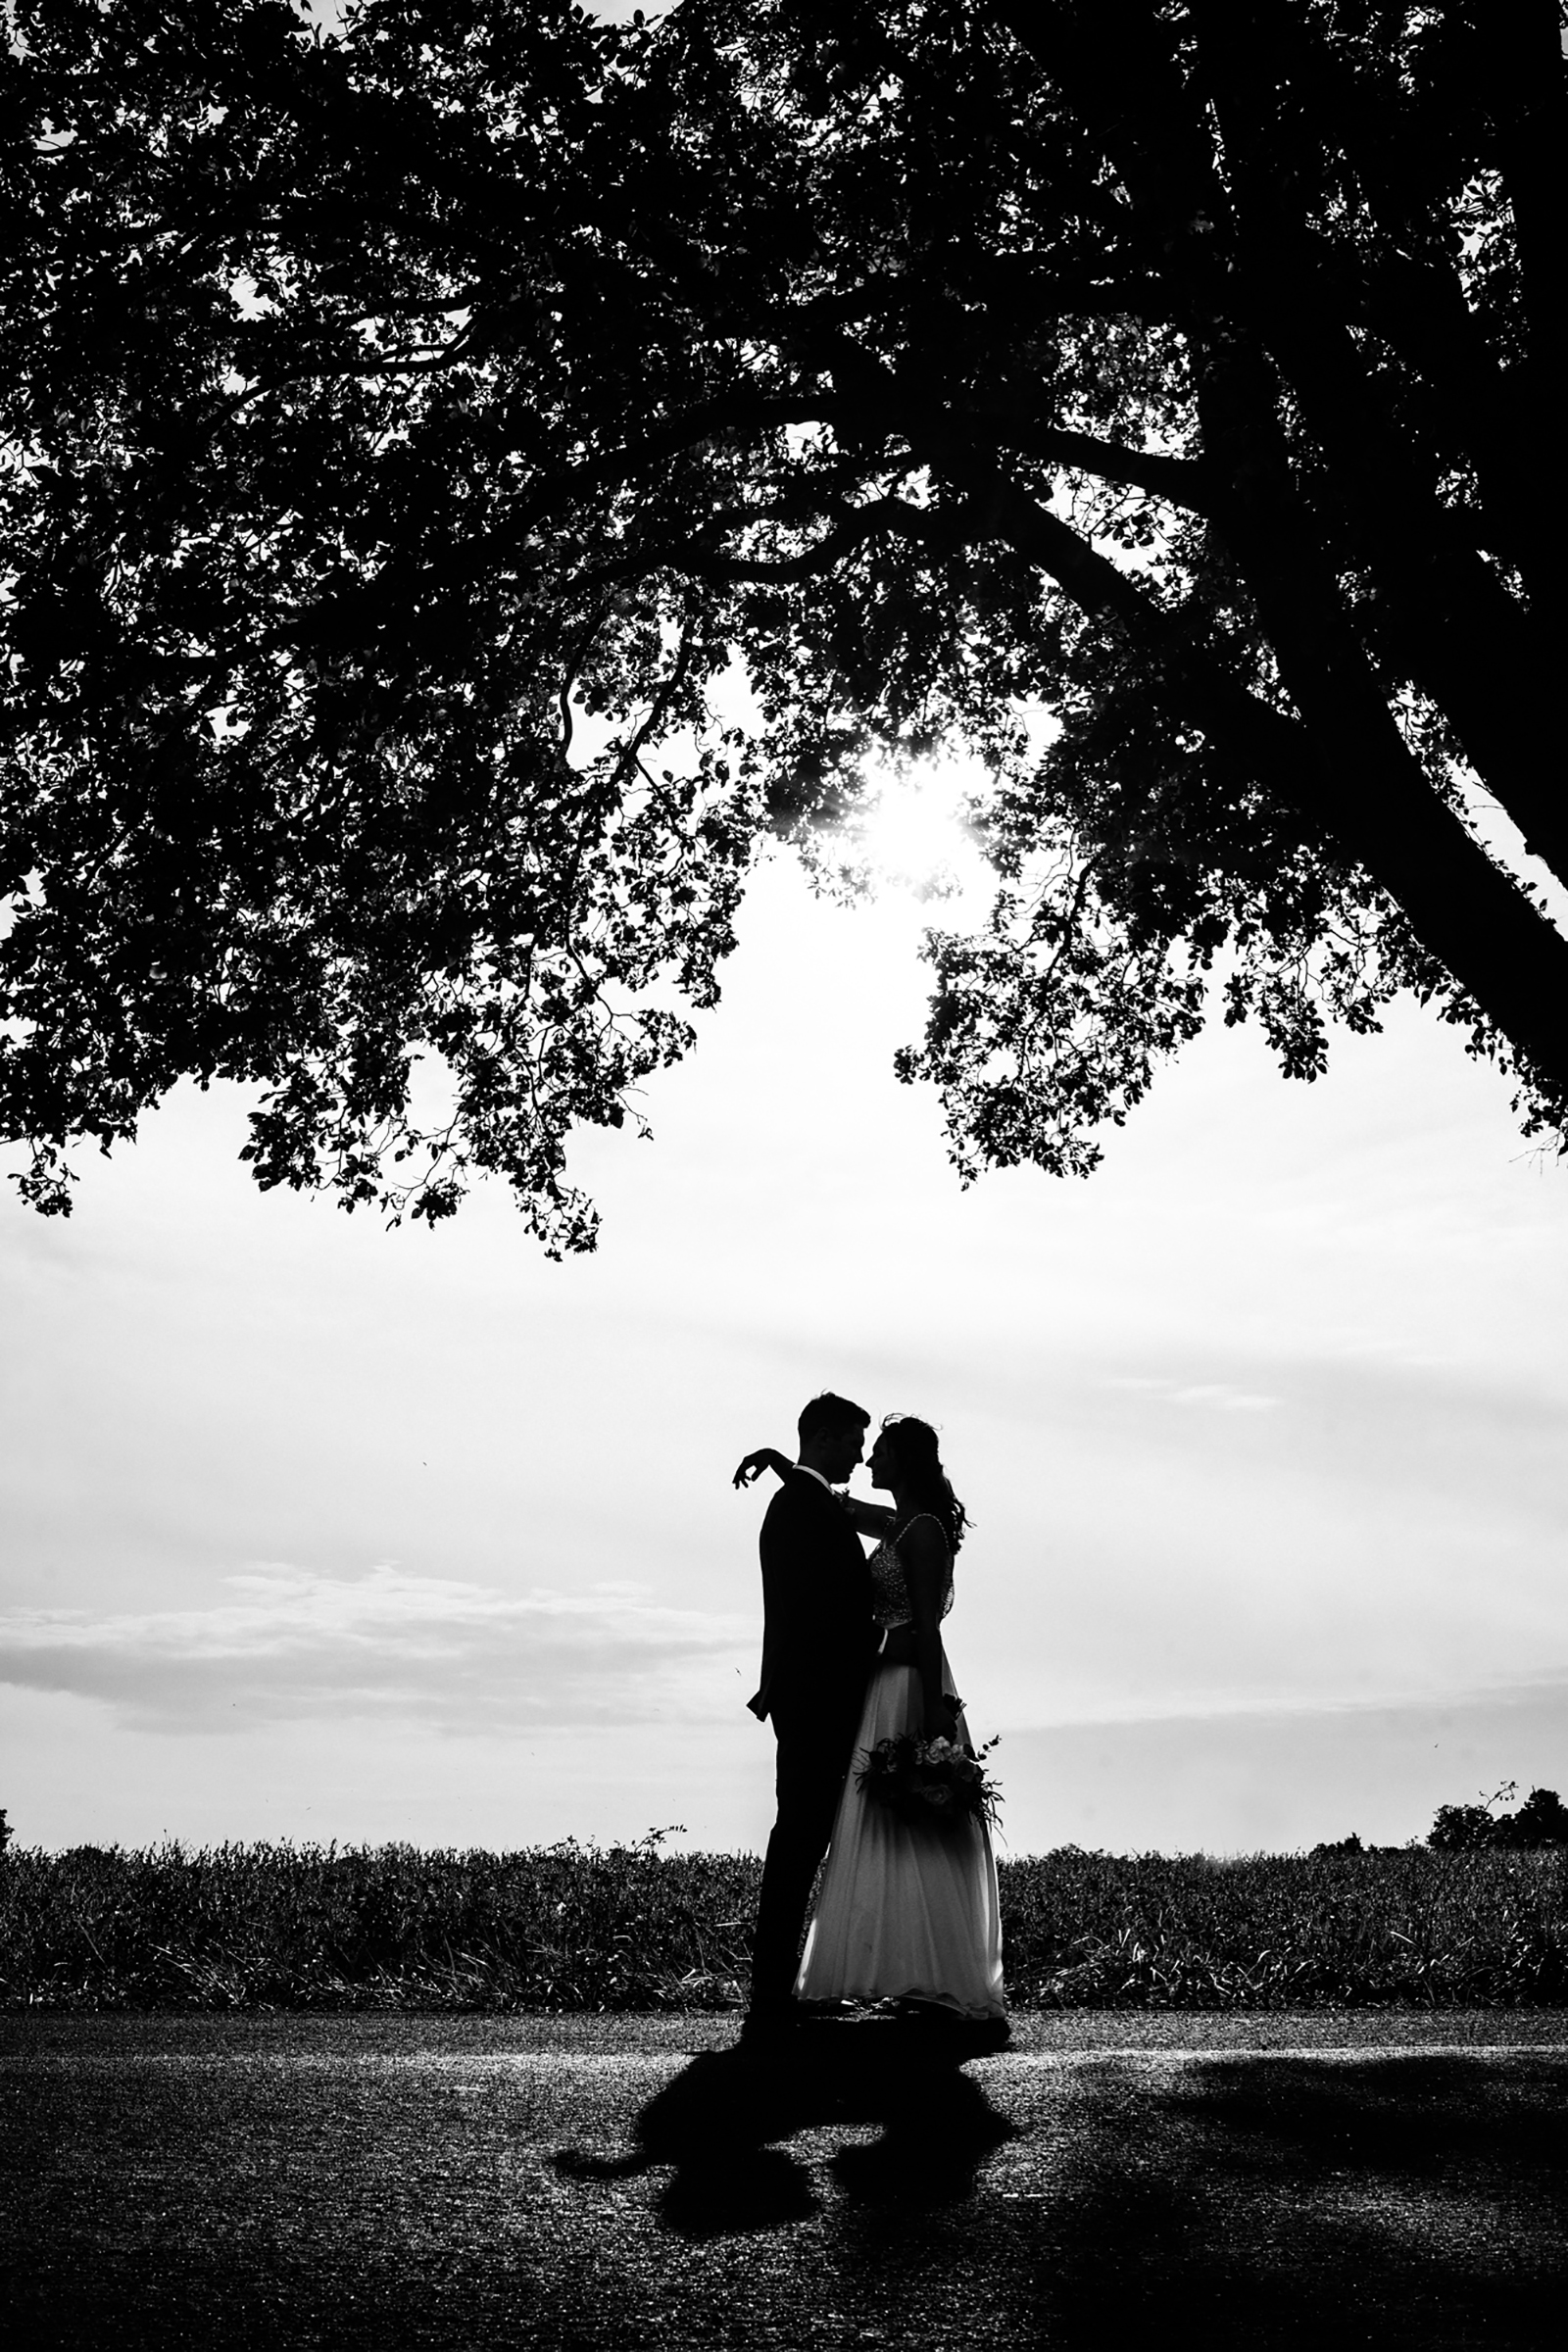 Couple silhouette under tree - photo by Kelli Wilke Photography